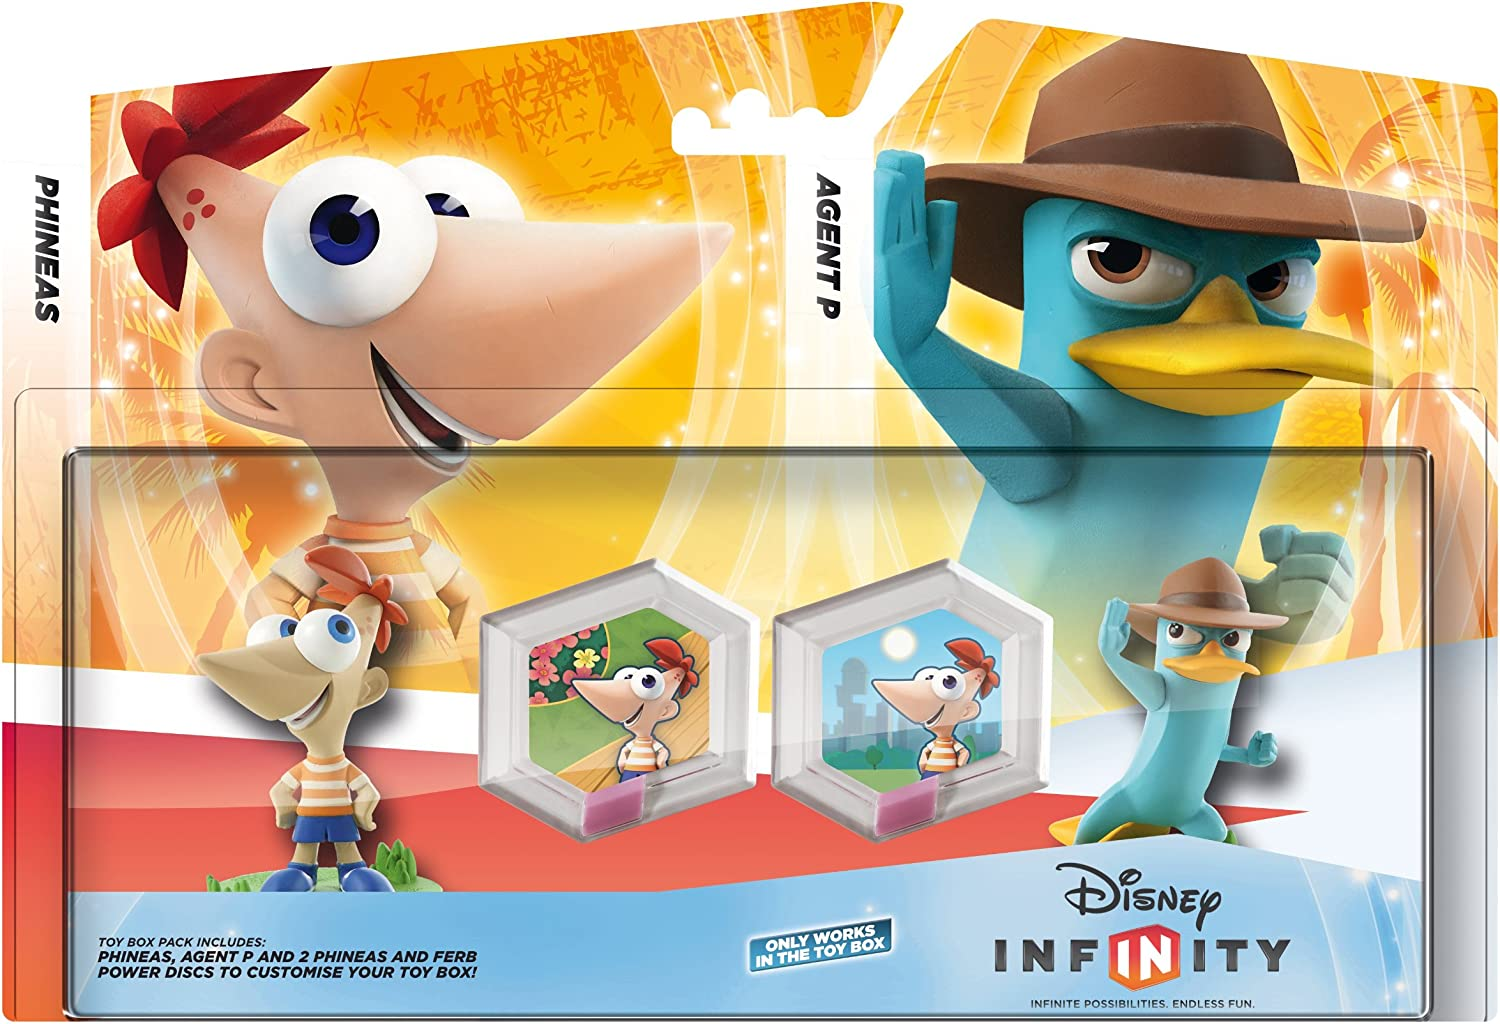 Disney Infinity - Toy Box Set: Phineas (Phineas, Agente P + 2 Power Disc)